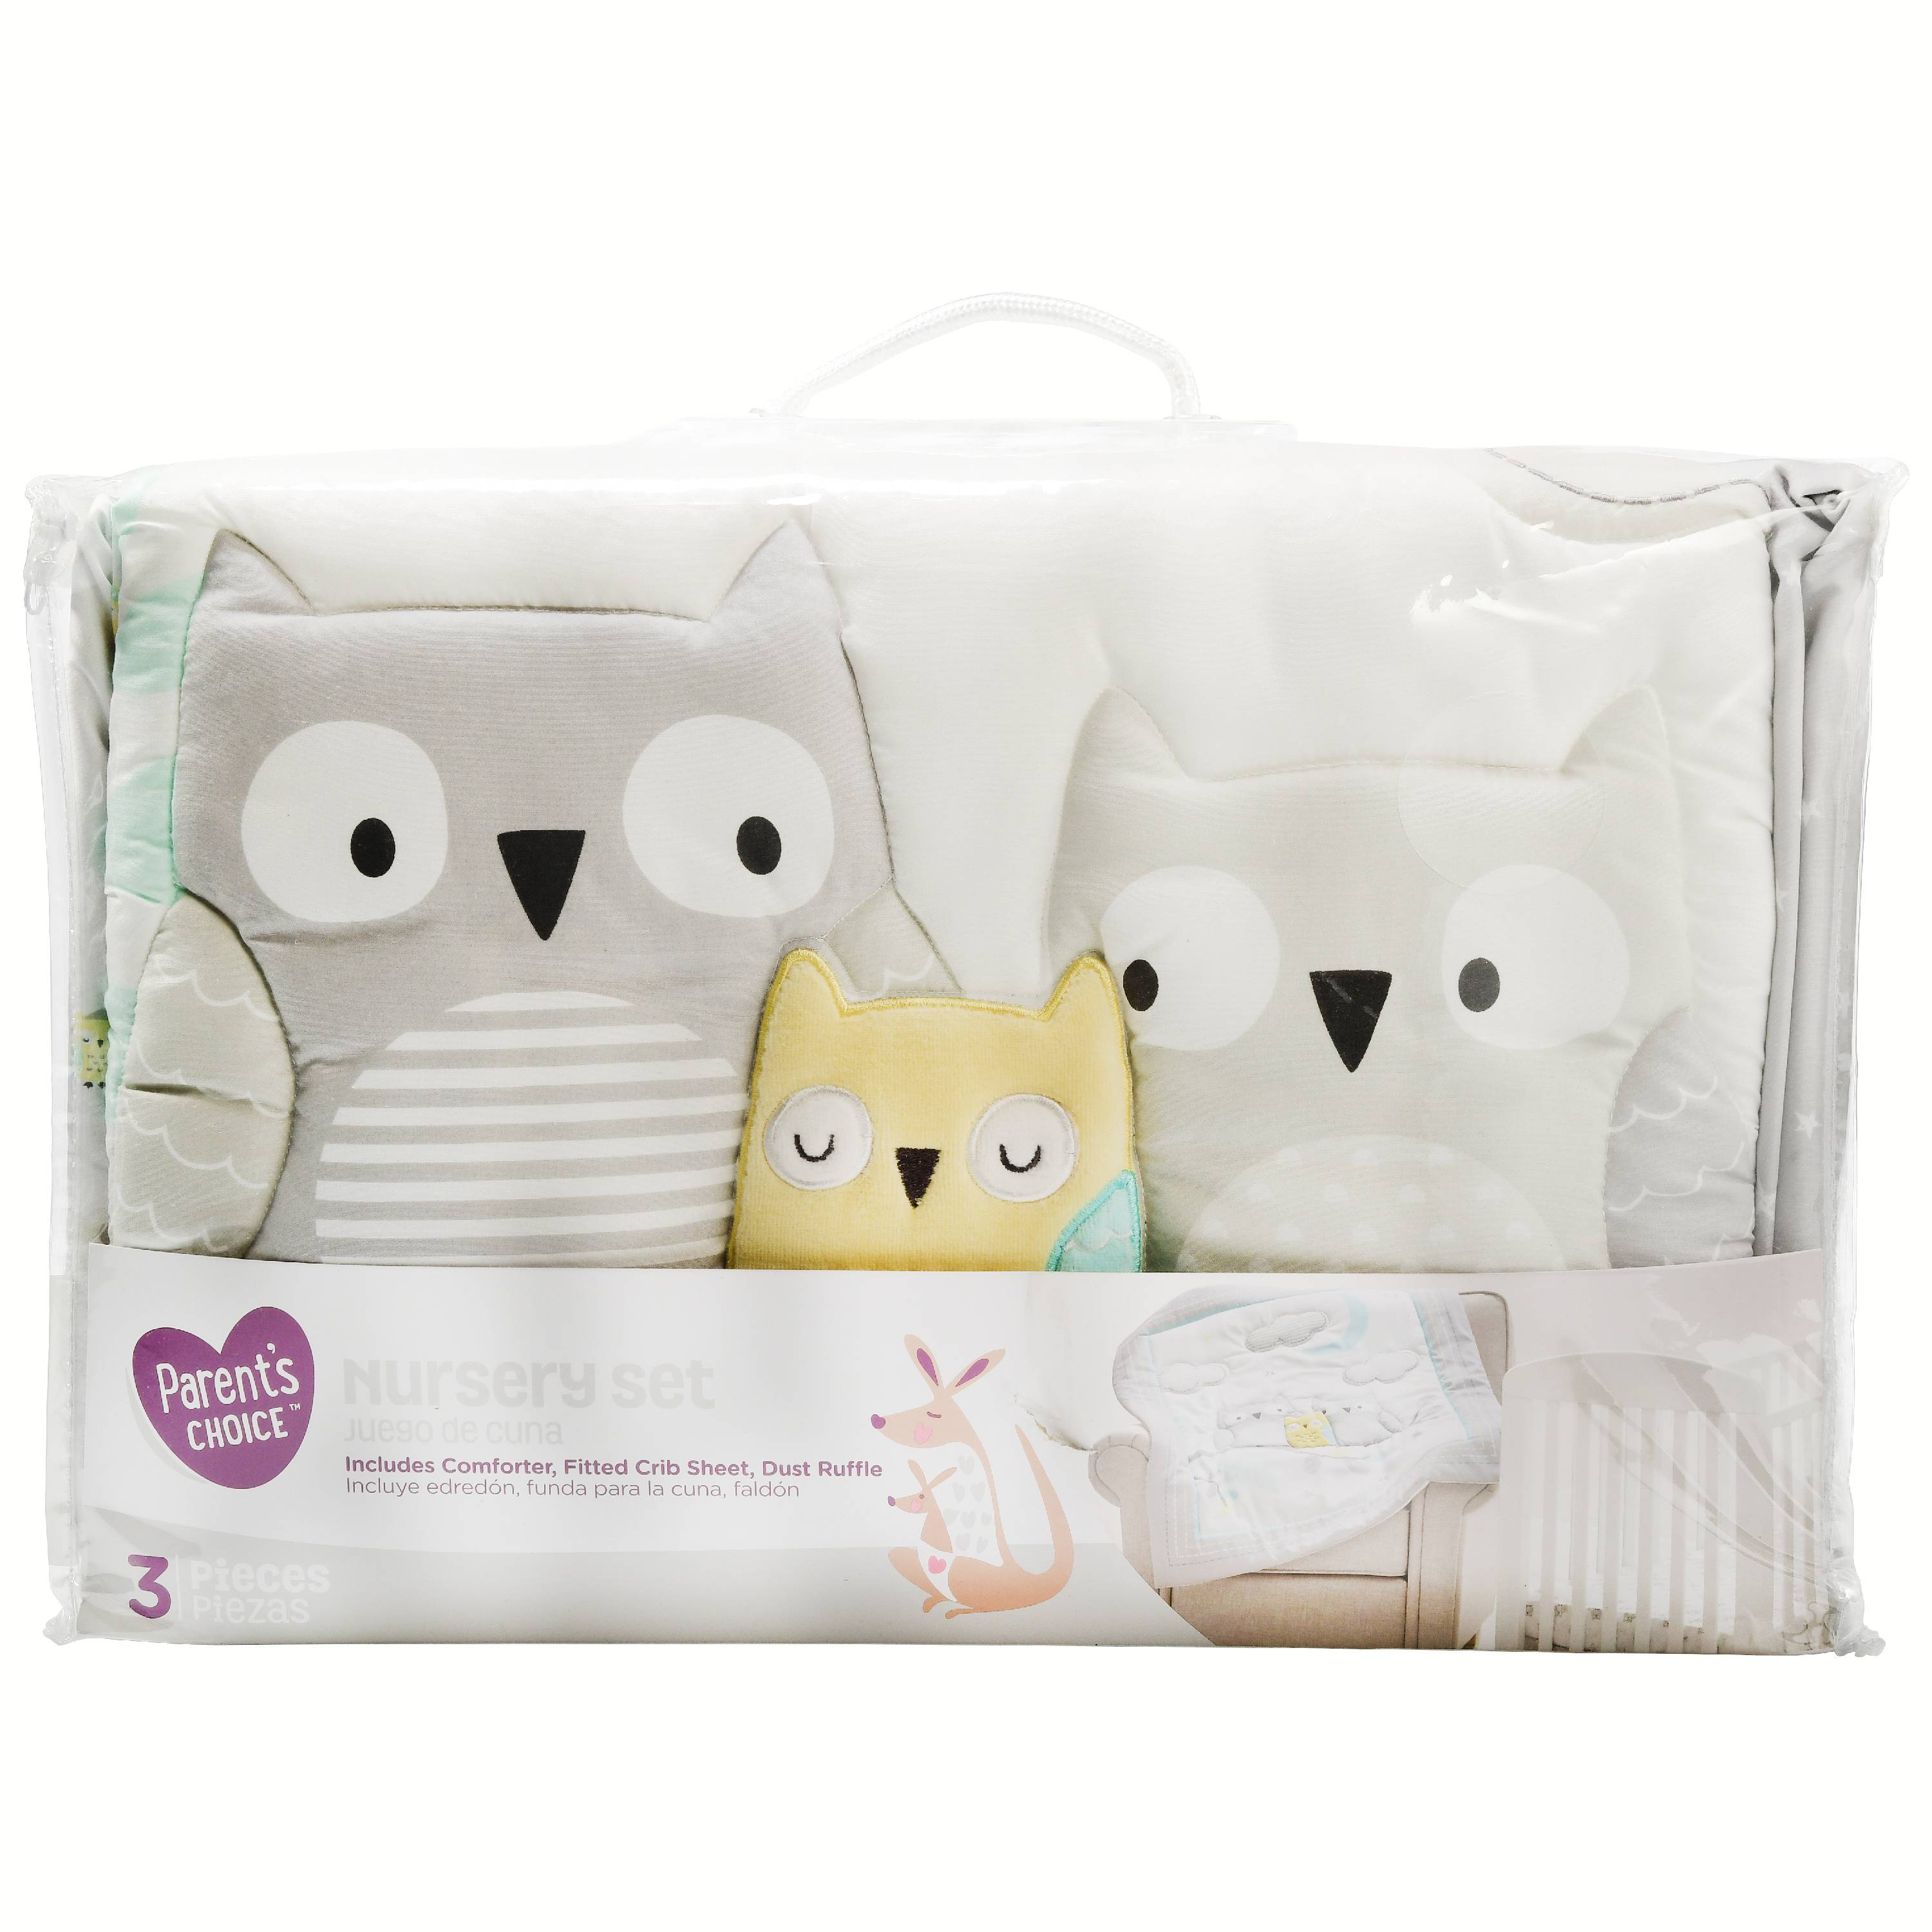 Parent's Choice Nursery Set, 3 Piece Set, Owl